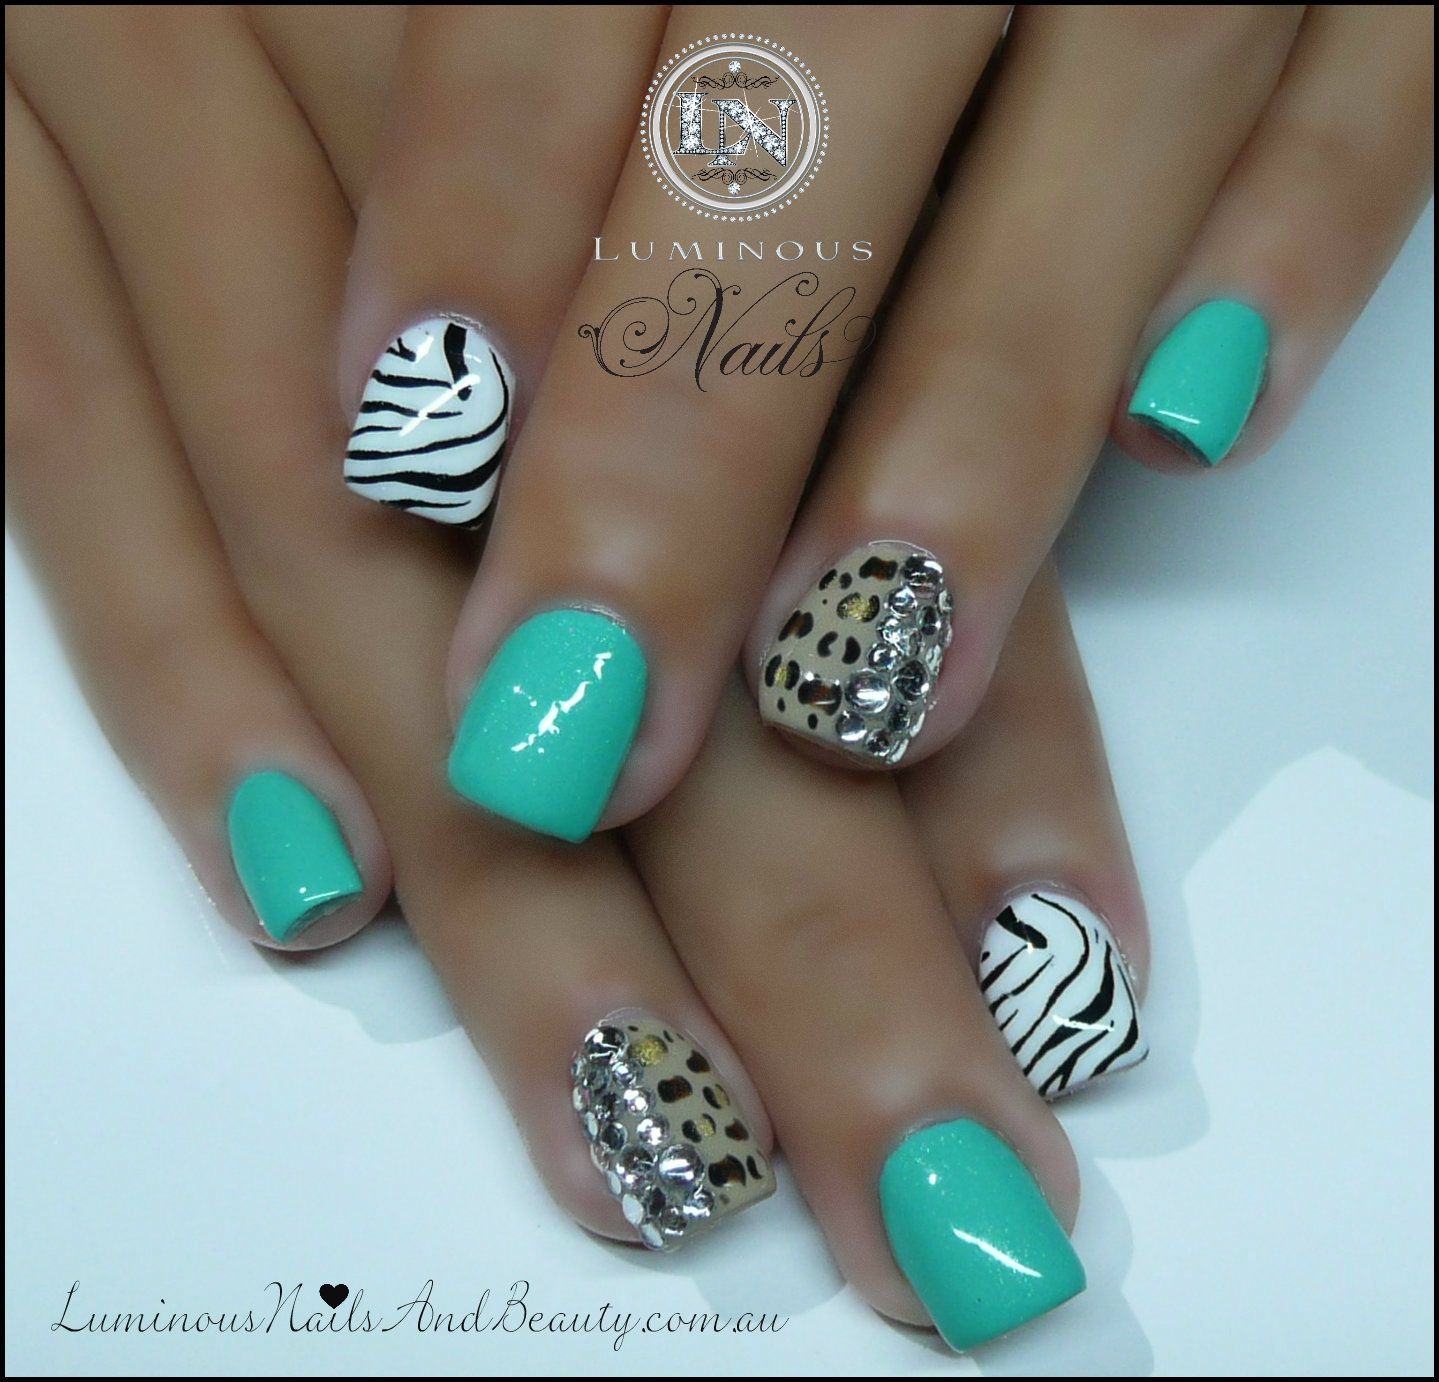 See more nail designs at ilsssfrenchnails of